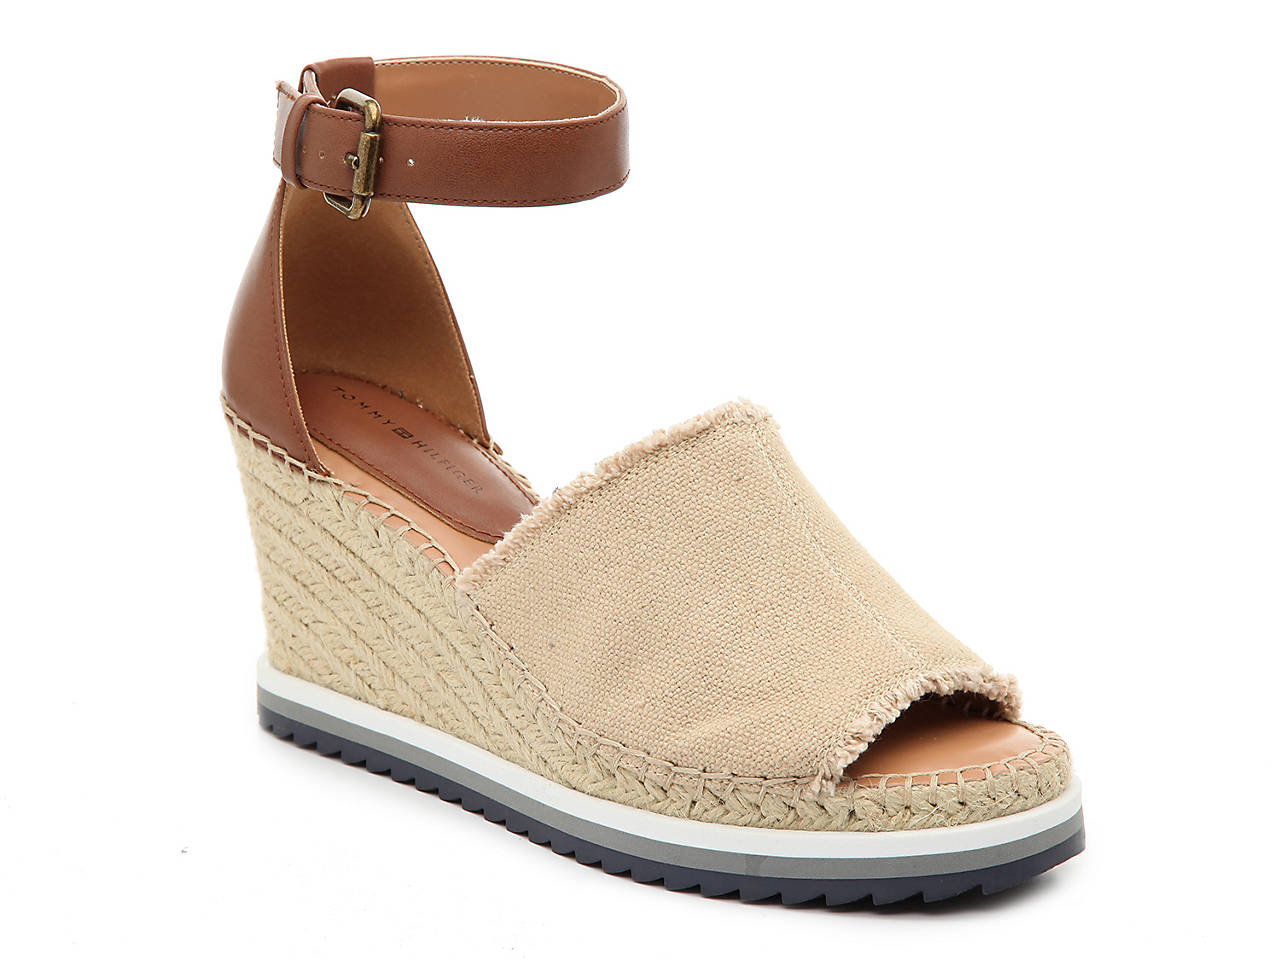 6c84e8571 Tommy Hilfiger Yavino Espadrille Wedge Sandal Women s Shoes